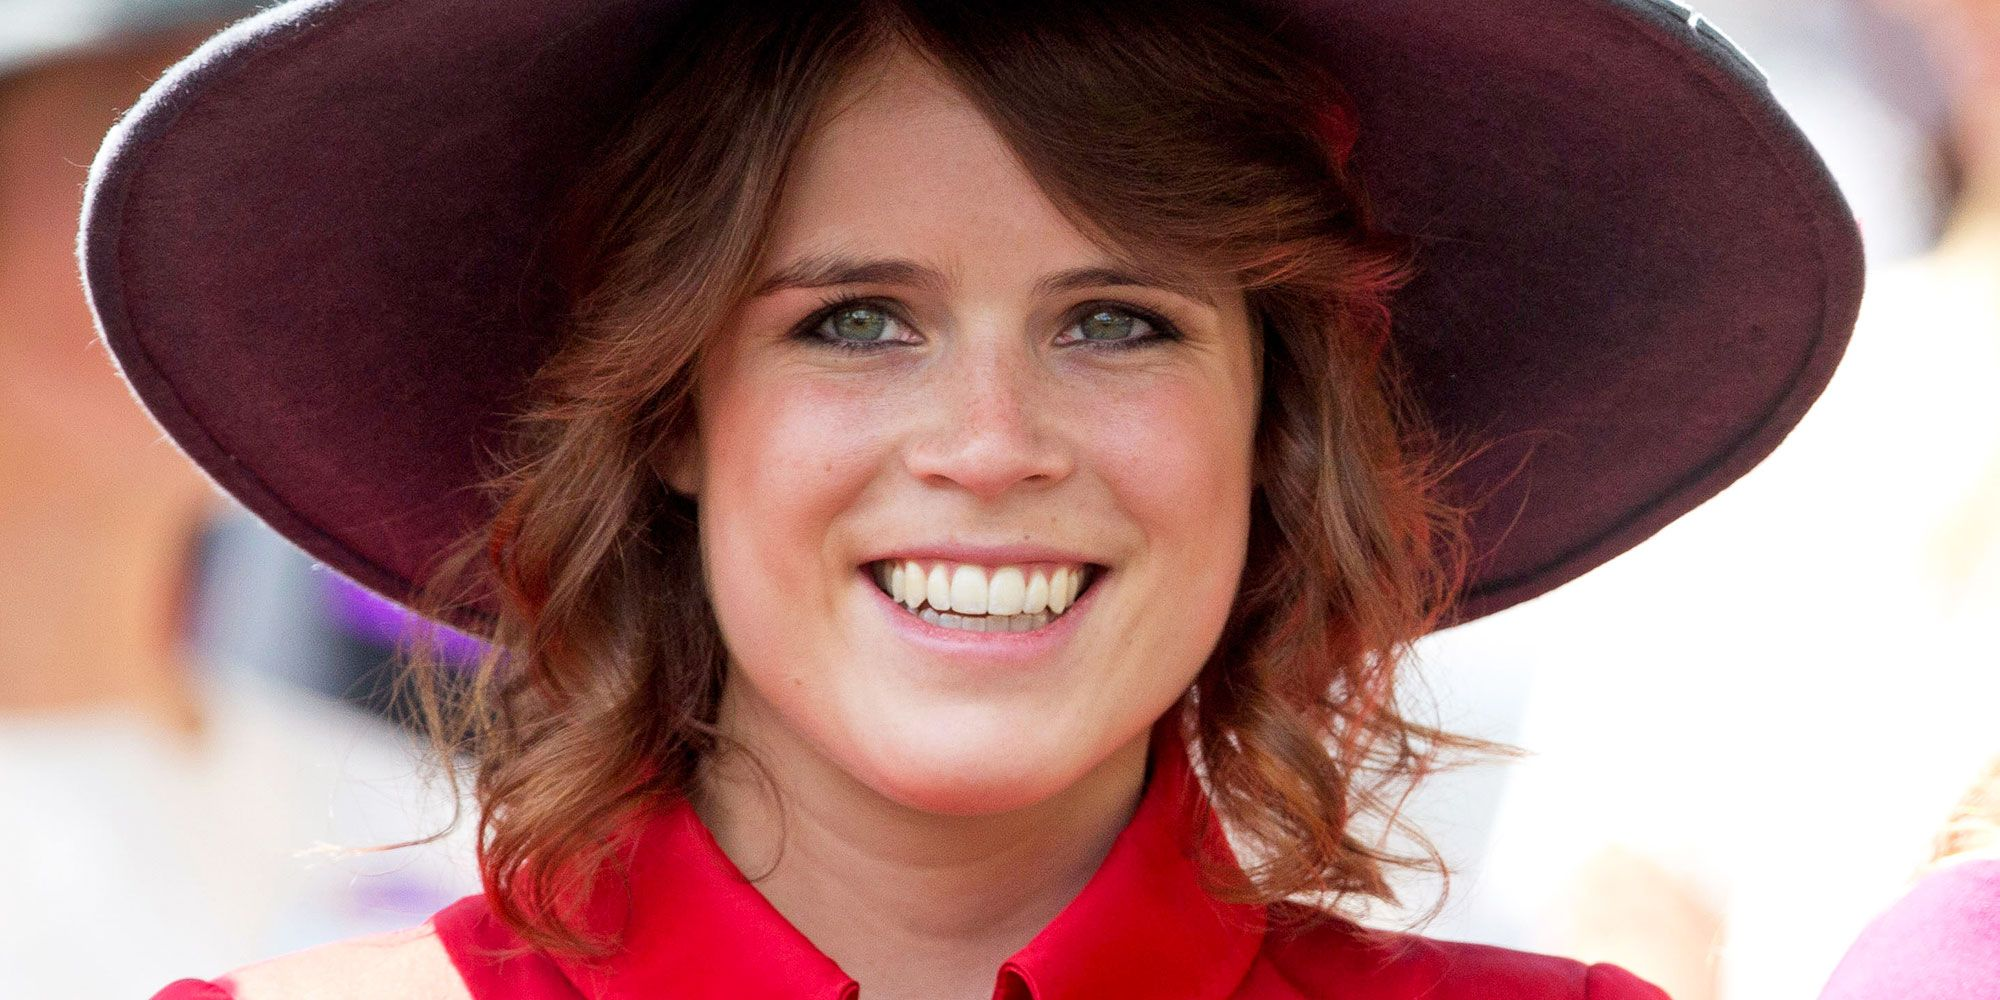 Princess Eugenie Dyed Her Hair Red For Her Royal Wedding